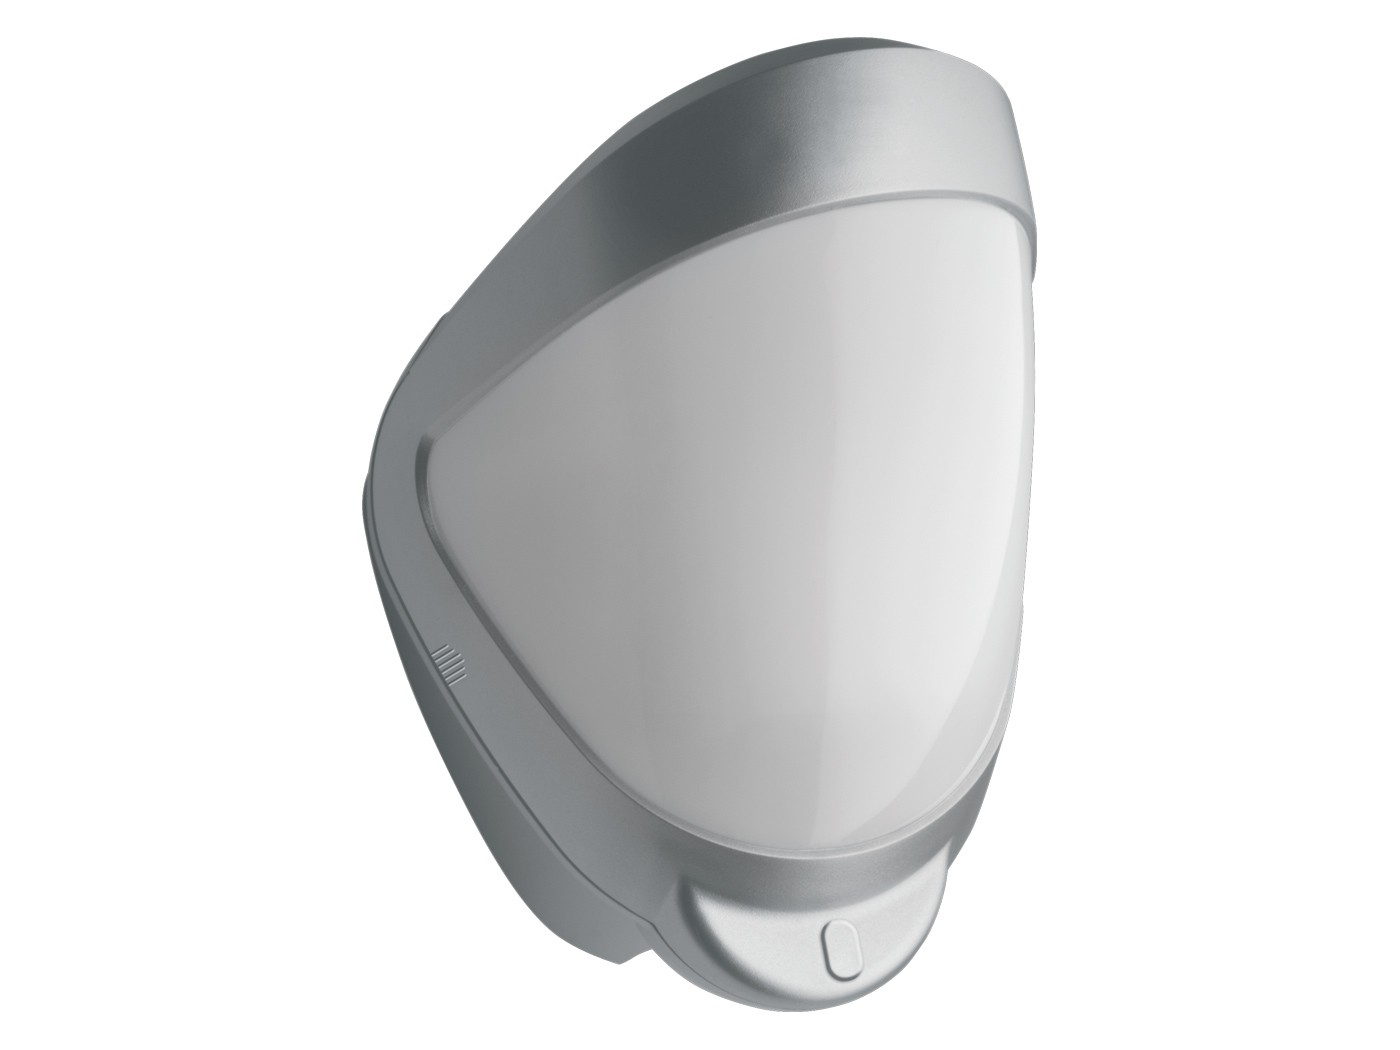 outdoor motion detectors intrusion solutions wireless power transmission pdf wireless power transmission rf